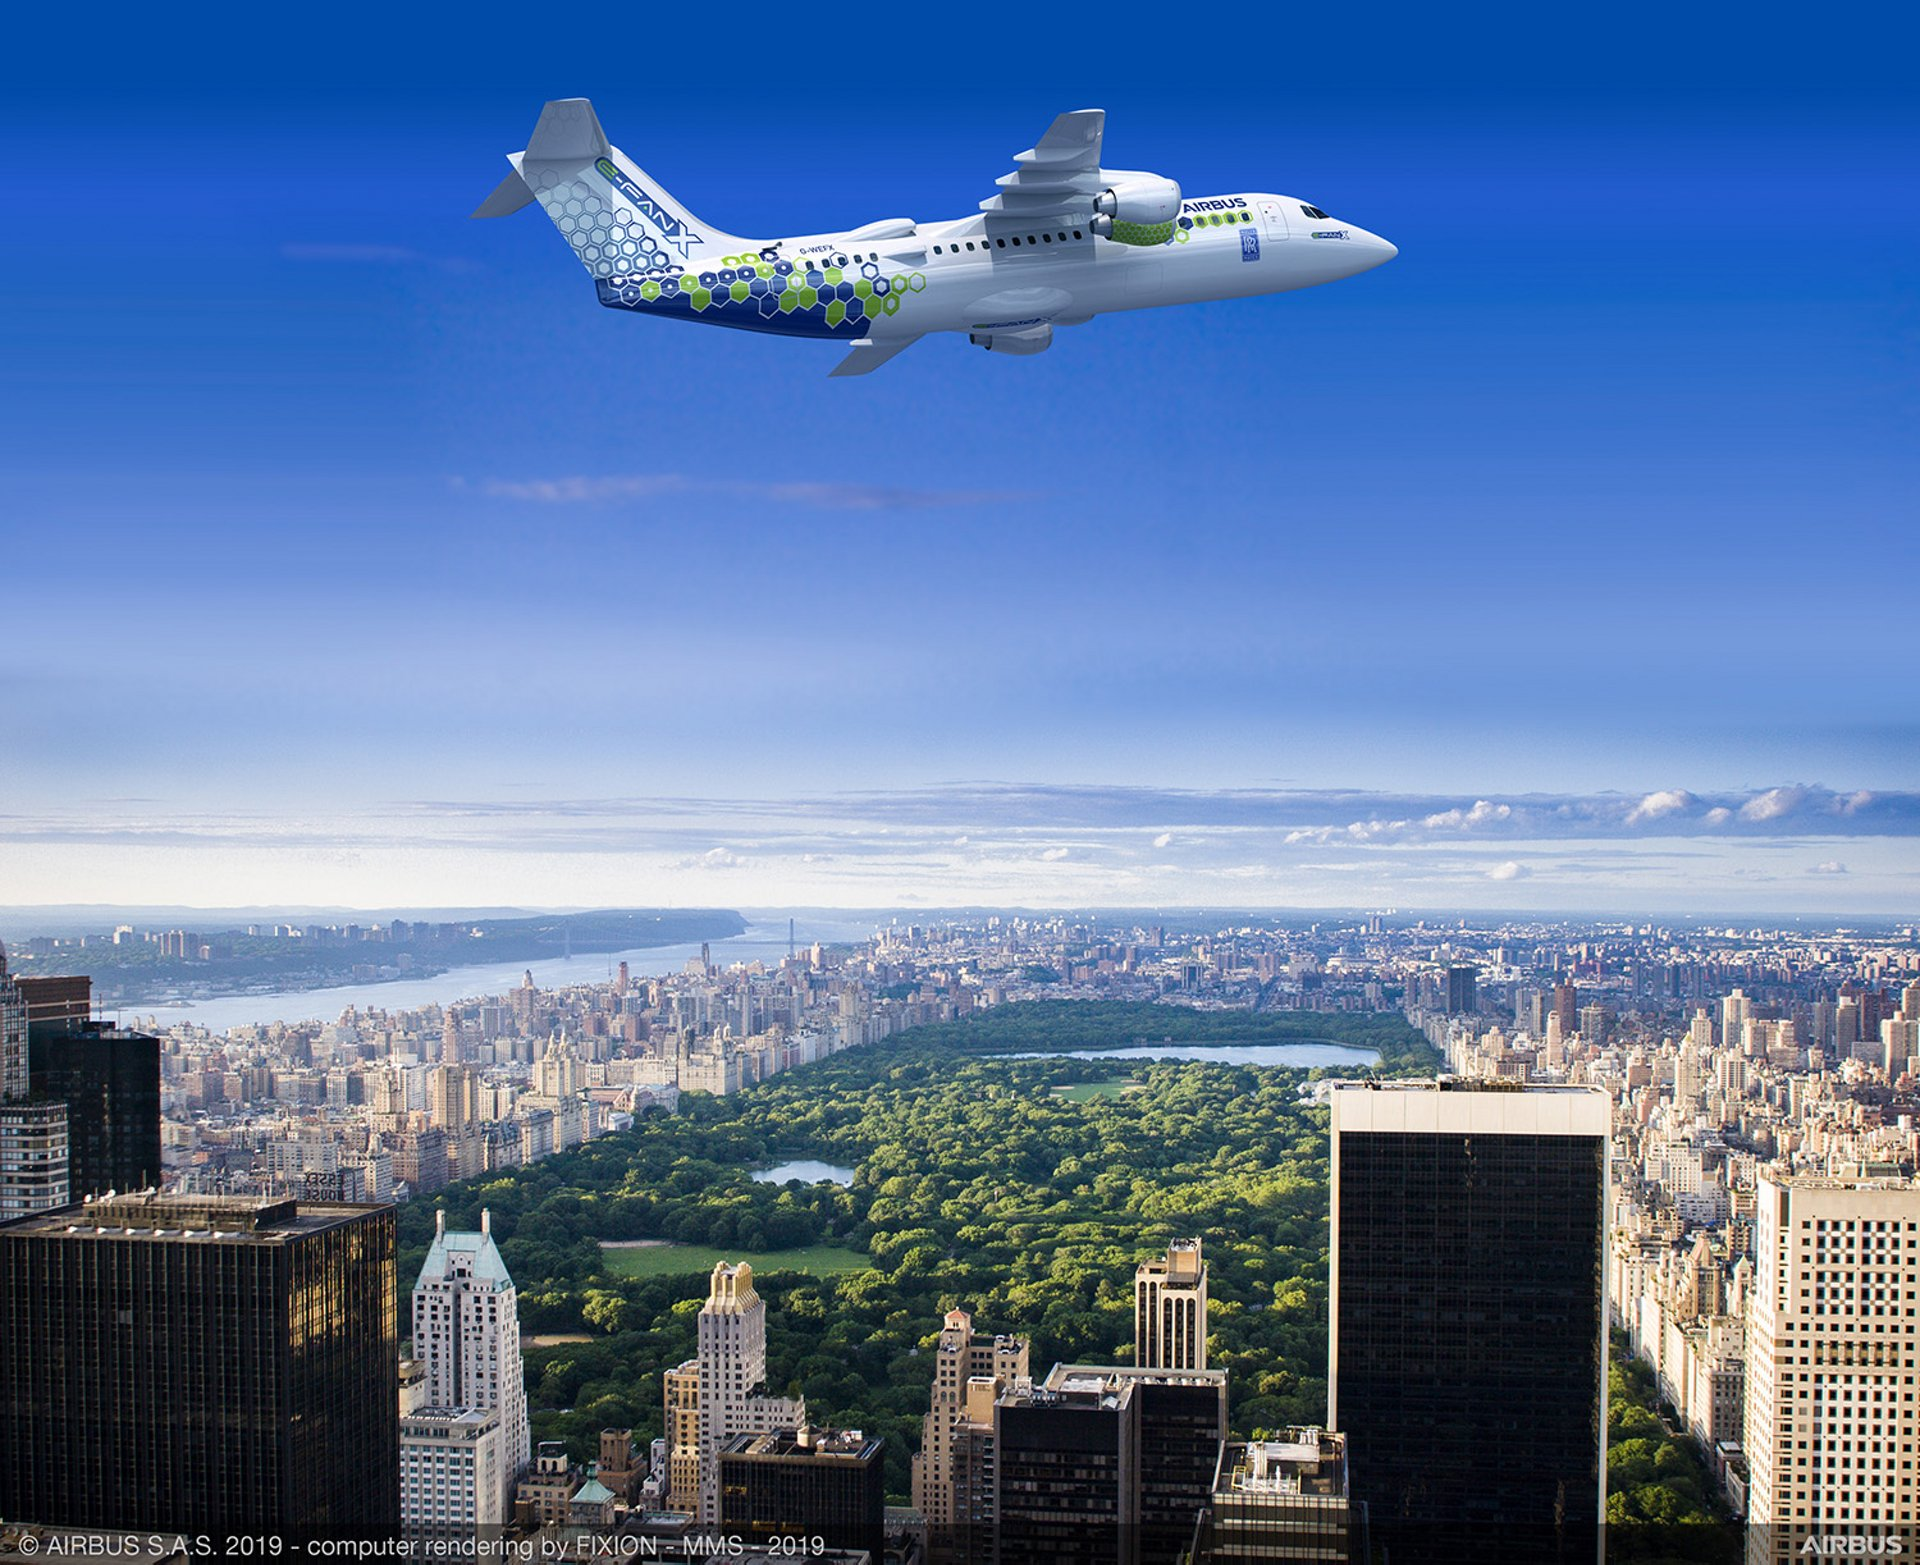 Launched as an innovation project in 2017, E-Fan X is the next step in Airbus' electrification journey; the flight demonstrator that will test a 2 MW hybrid-electric propulsion system is depicted in a composite image over the city of New York